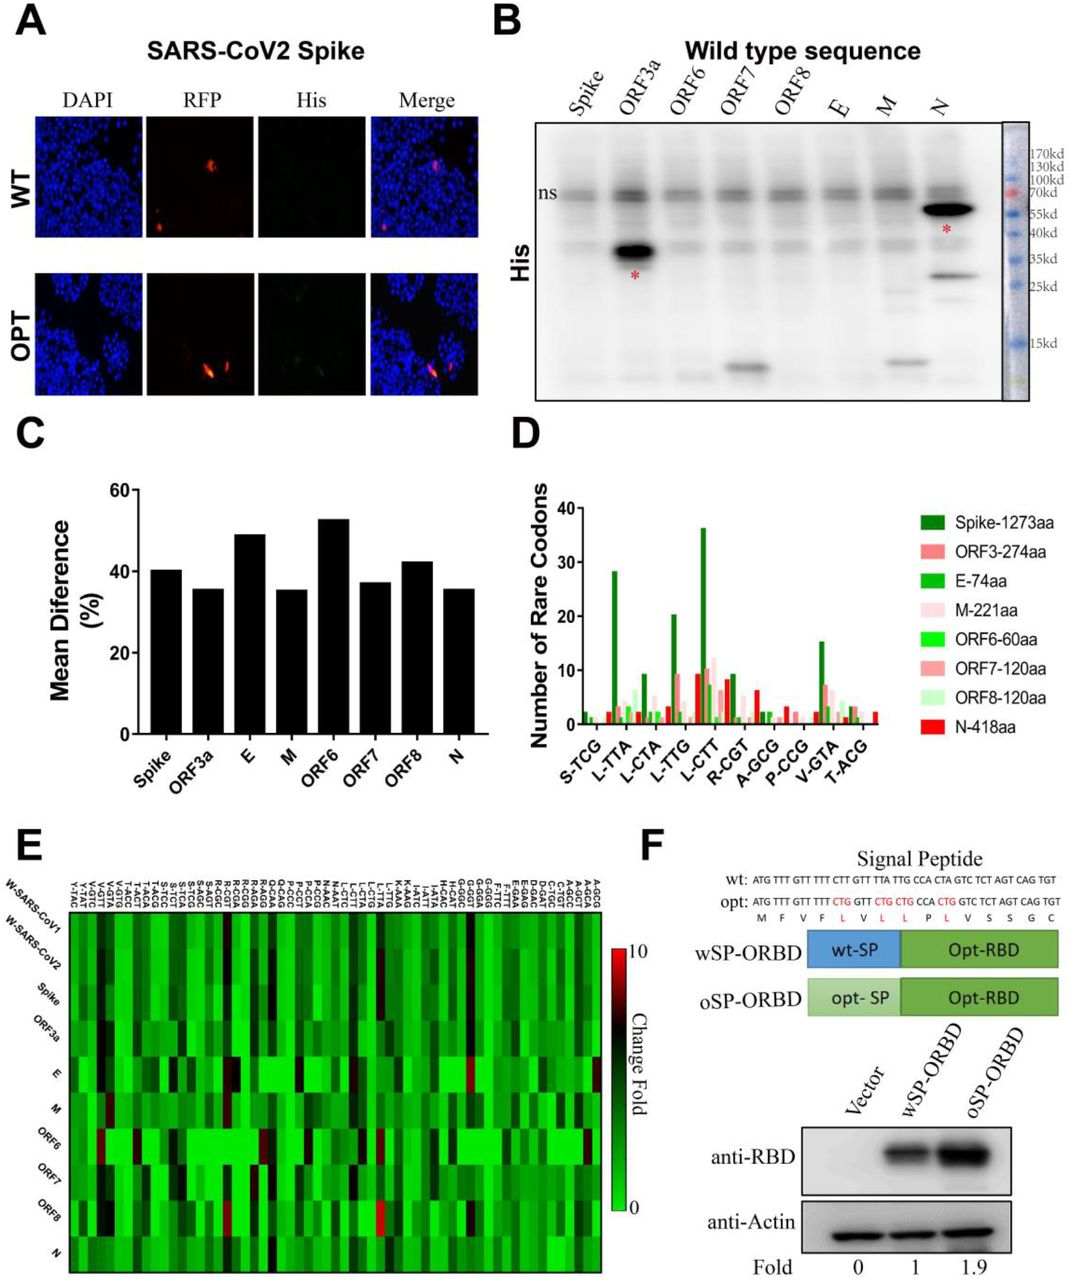 Rare codon bias can prevent translation of SARS-CoV-2 derived sequences (A) Protein expression of plasmids expressing SARS-CoV-2 S using the original or codon-optimized sequence after transfection into human A549 cells. Expression was evaluated using confocal microscopy, and an IRES-RFP sequence was included after the S open reading frame (ORF) for visualisation. (B) Western Blot assay was performed to detect the protein abundance of SARS-CoV-2-derived sequences including the four structural proteins (spike (S), envelope (E), membrane (M) and nucleocapsid (N)) and four accessory proteins (ORF3, ORF6, ORF7 and ORF8). The abbreviation 'ns' indicates non-specific. (C) Codon usage variability of selected SARS-CoV-2 ORFs was analysed with GCUA software using the human standard codon table as reference, and the figure was drawn using GraphPad Prism. (D) The number of rare codons (fraction